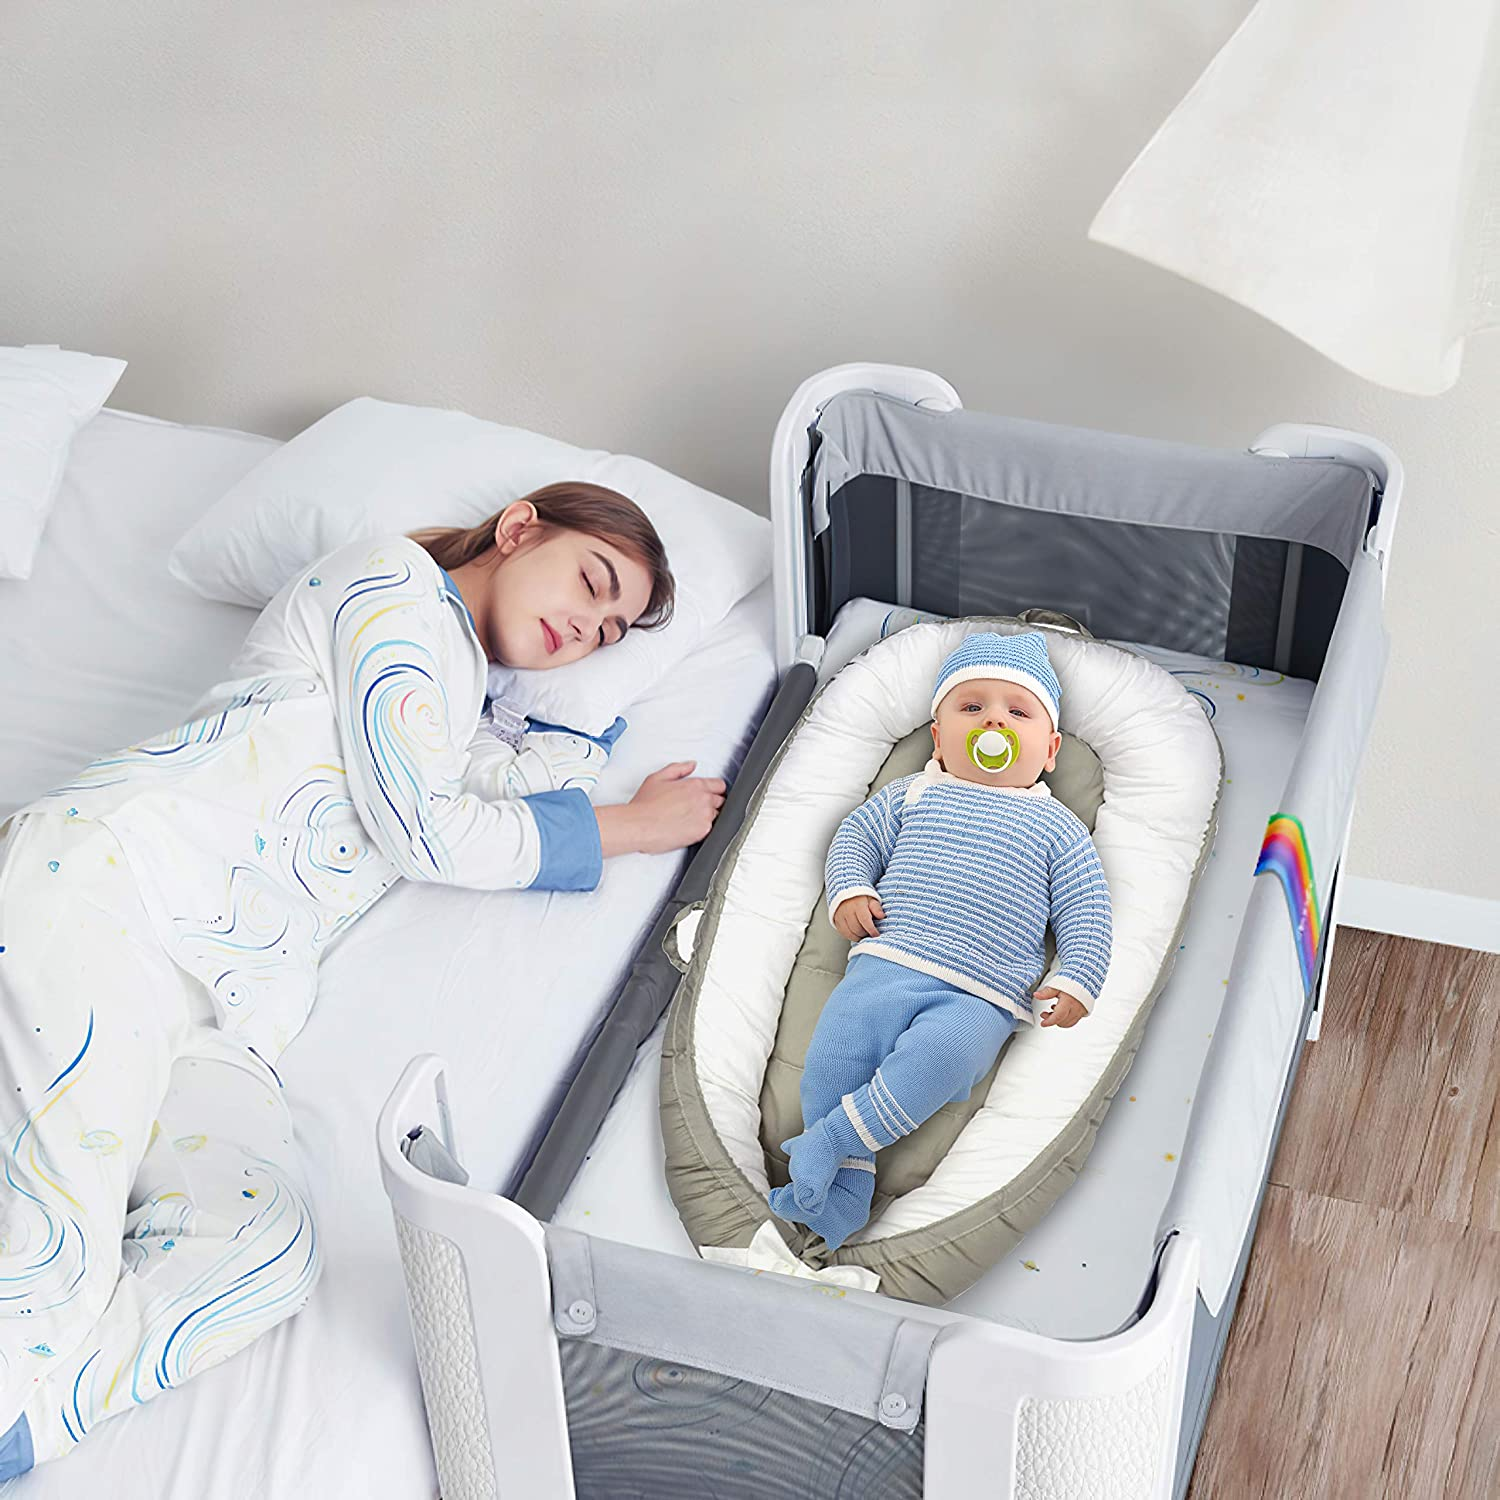 Booulfi Baby Lounger Baby Nest Portable Sleeper Newborn Lounger,Portable Ultra Soft Breathable Newborn Lounger Crib Perfect for Co-Sleeping and Traveling Great as Newborn Shower Gift,2 Covers